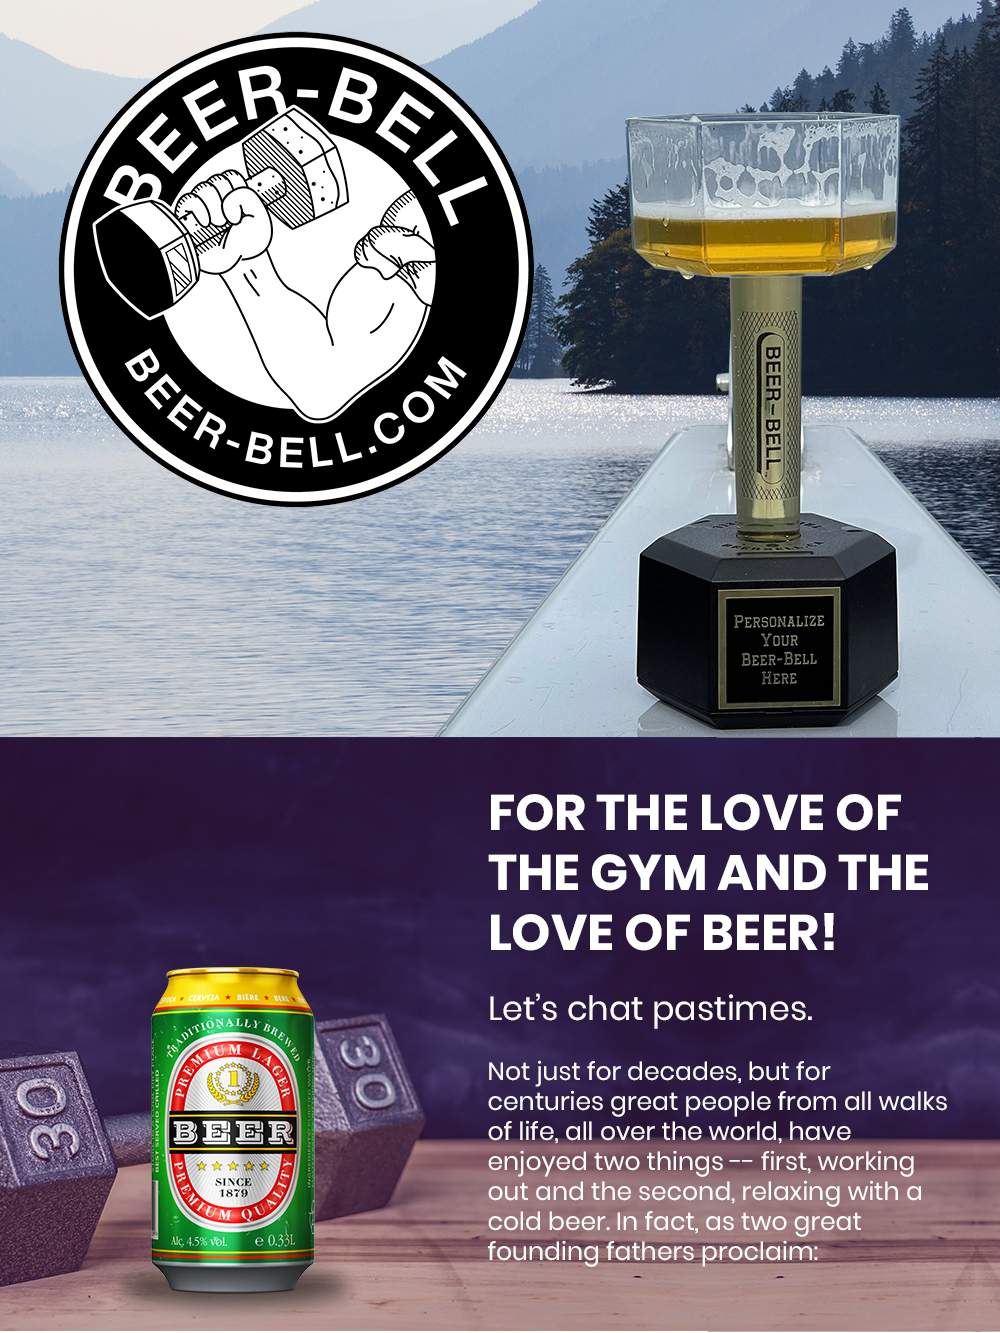 Product Release: The Beer-Bell